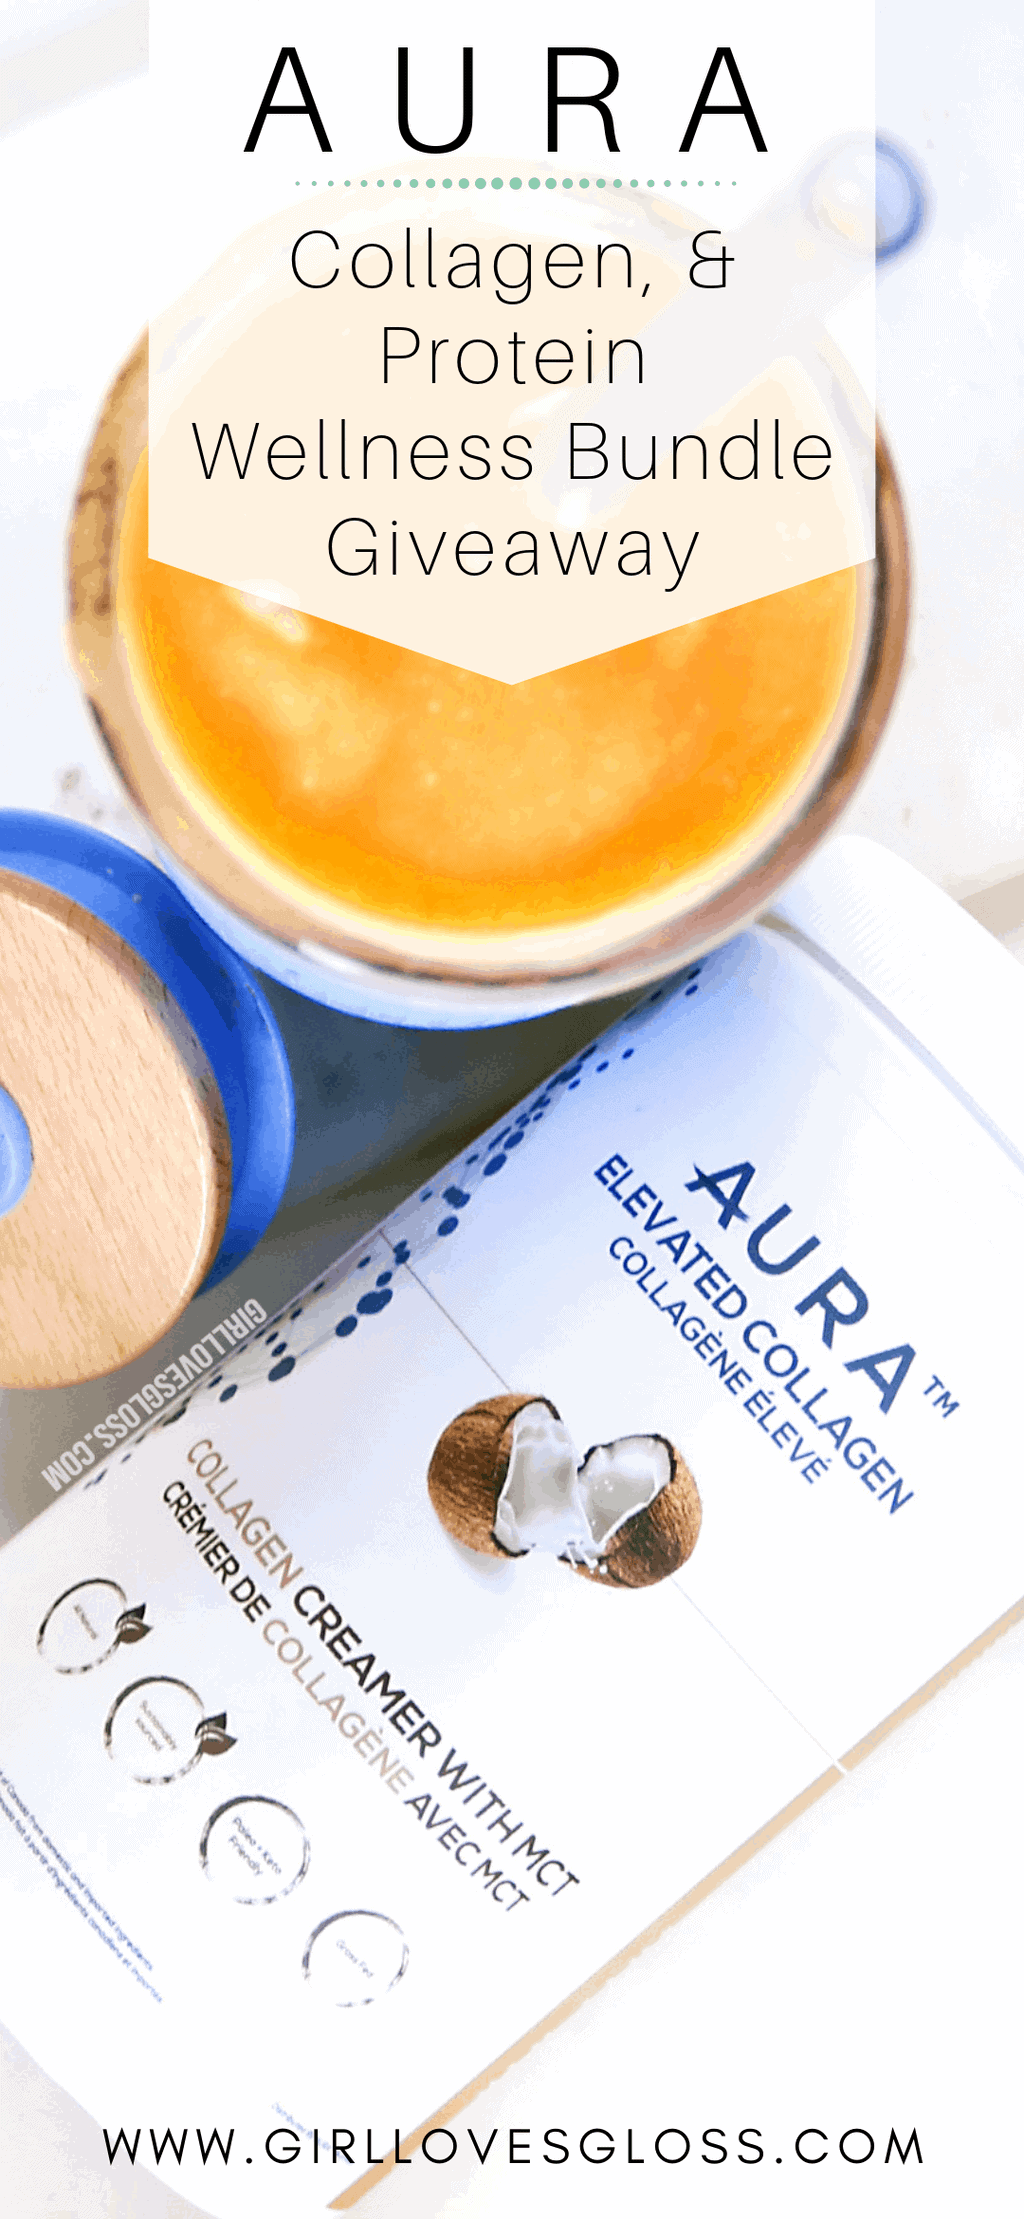 AURA Collagen and Protein Wellness Bundle Giveaway